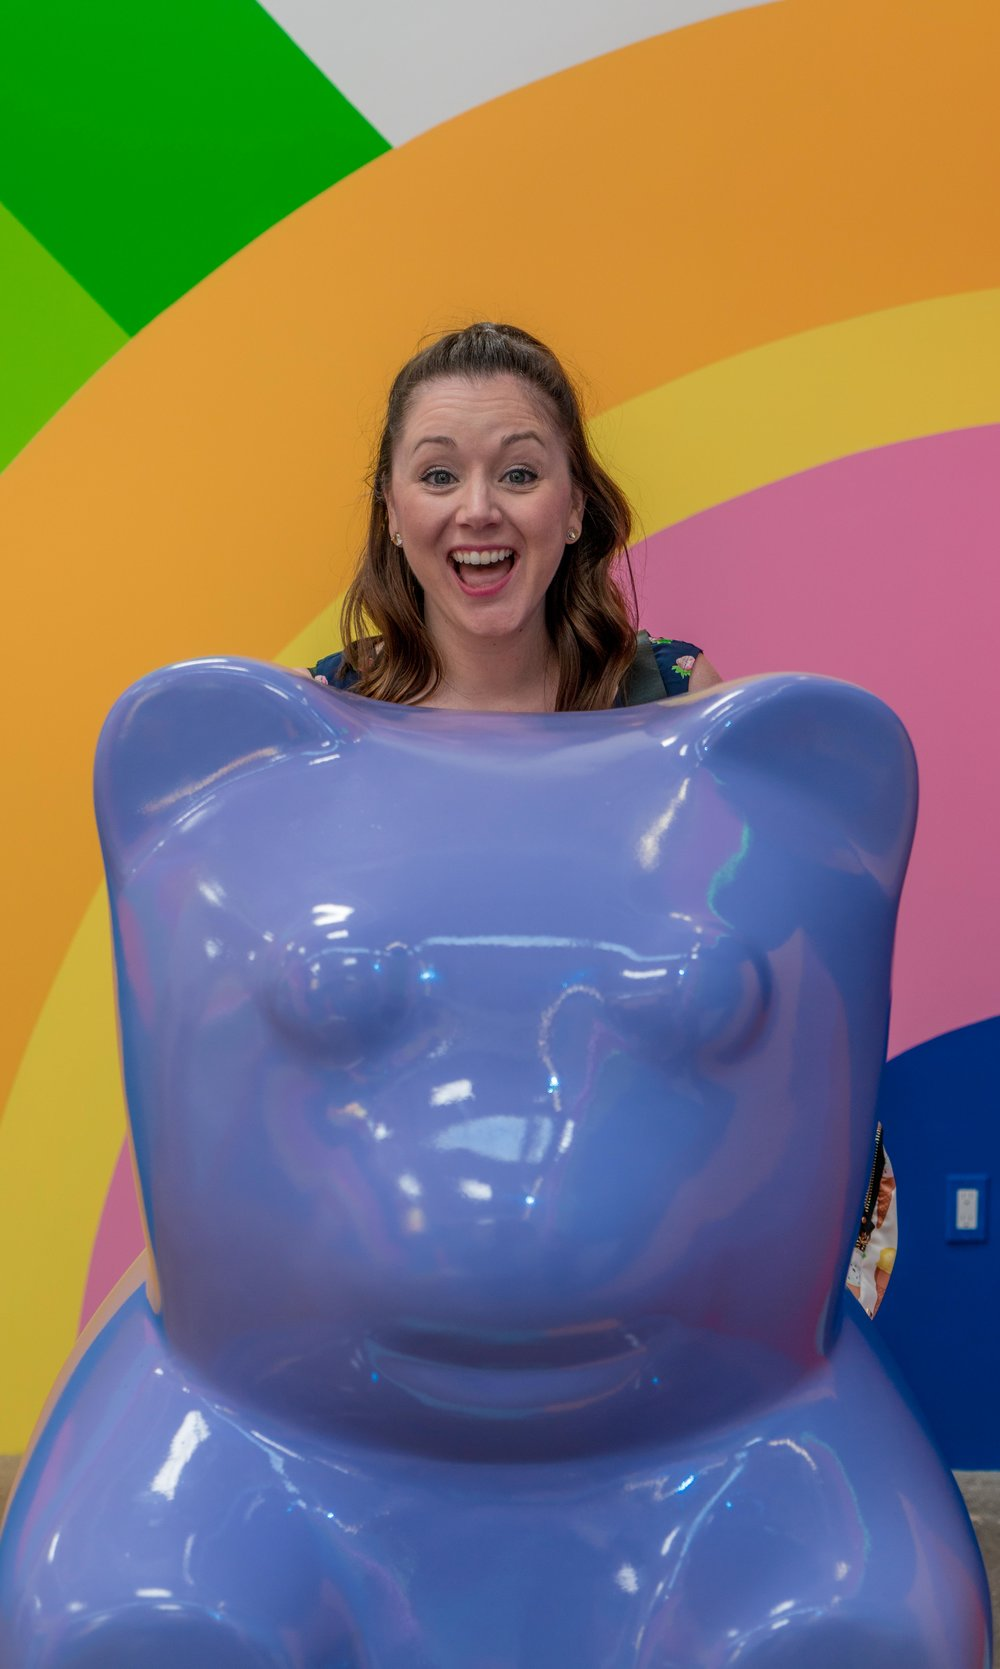 Giant Gummy Bear - Museum of Ice Cream